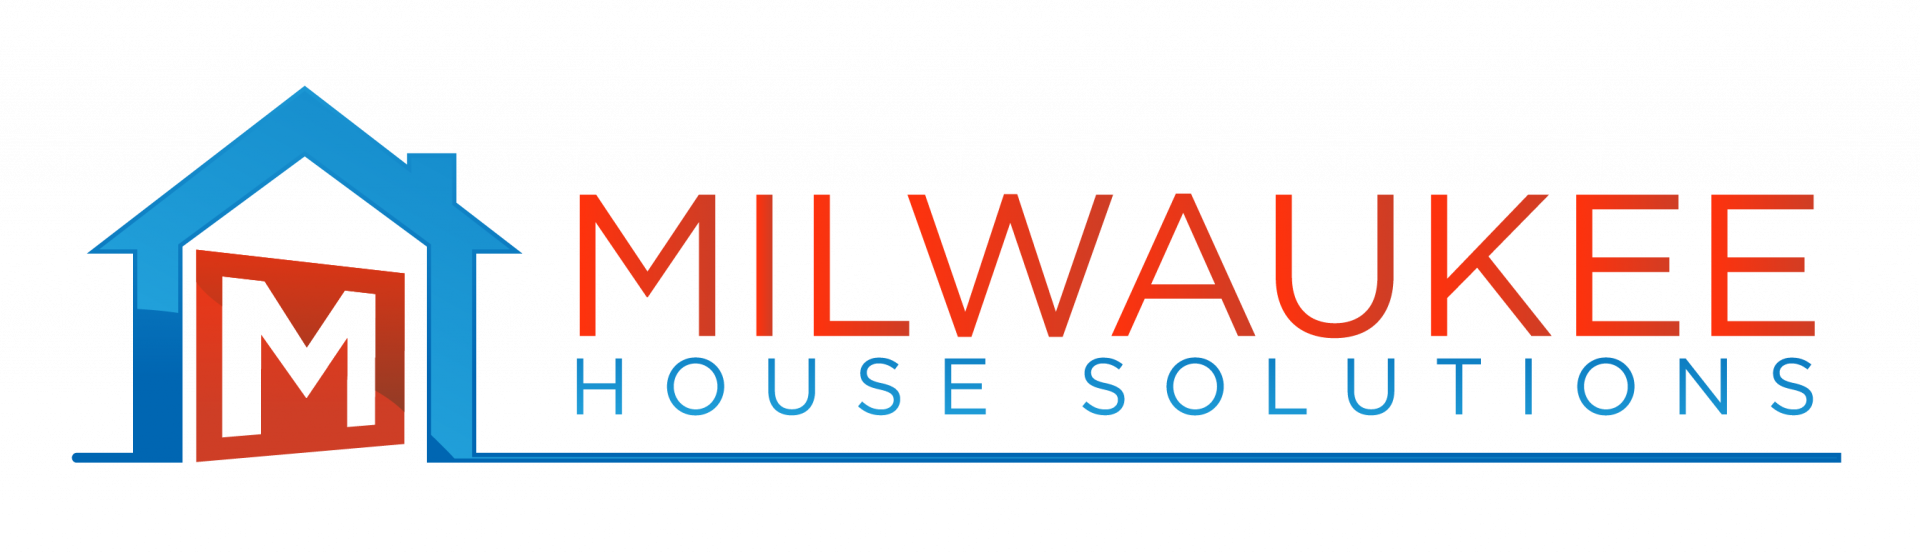 We Buy Houses Milwaukee | Sell My House | Cash For Your Home logo